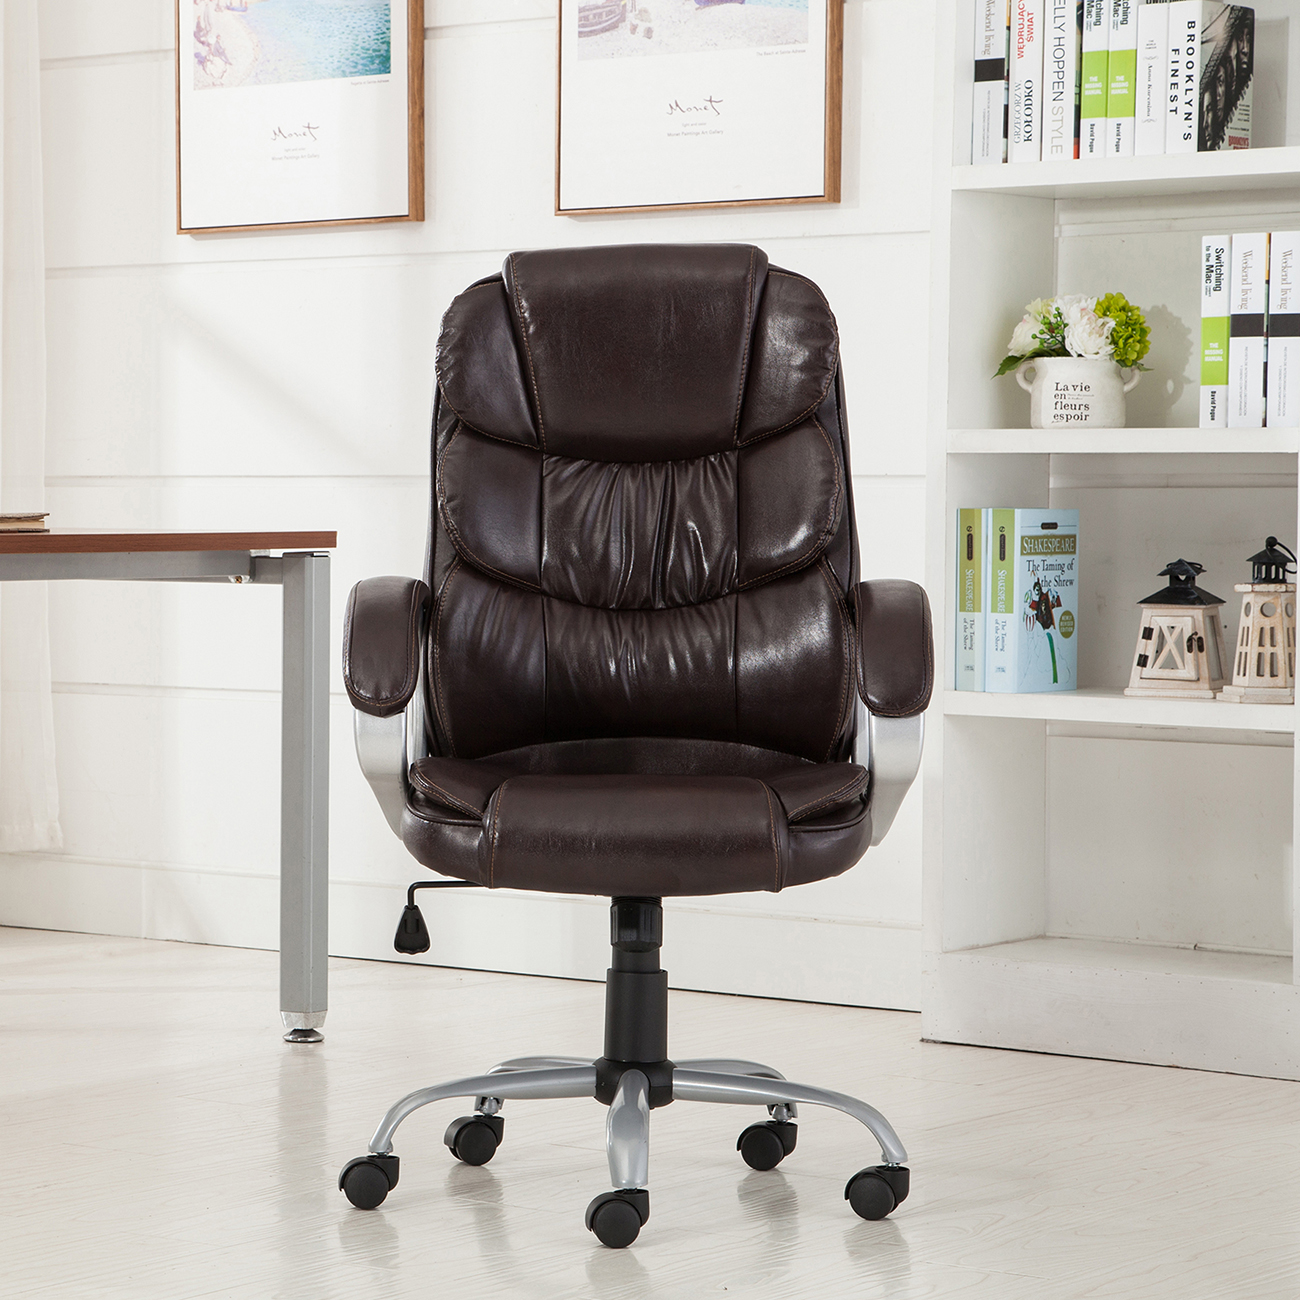 PU-Leather-Office-Rolling-Computer-Chair-Black-Mocha-High-Back-Executive-Desk thumbnail 8